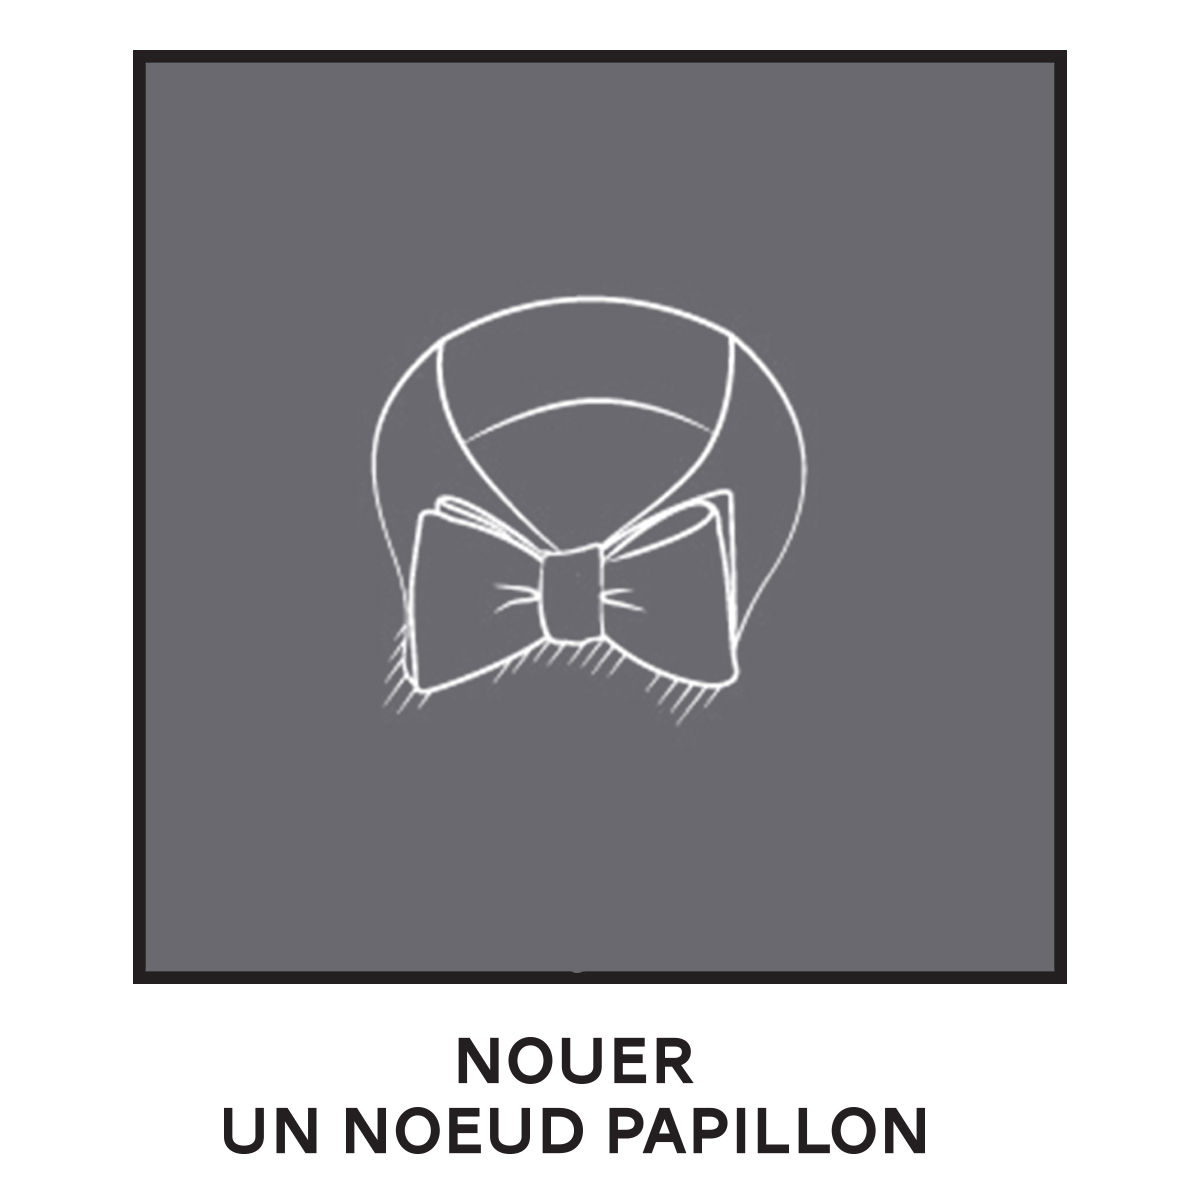 Faire Noeud Papillon